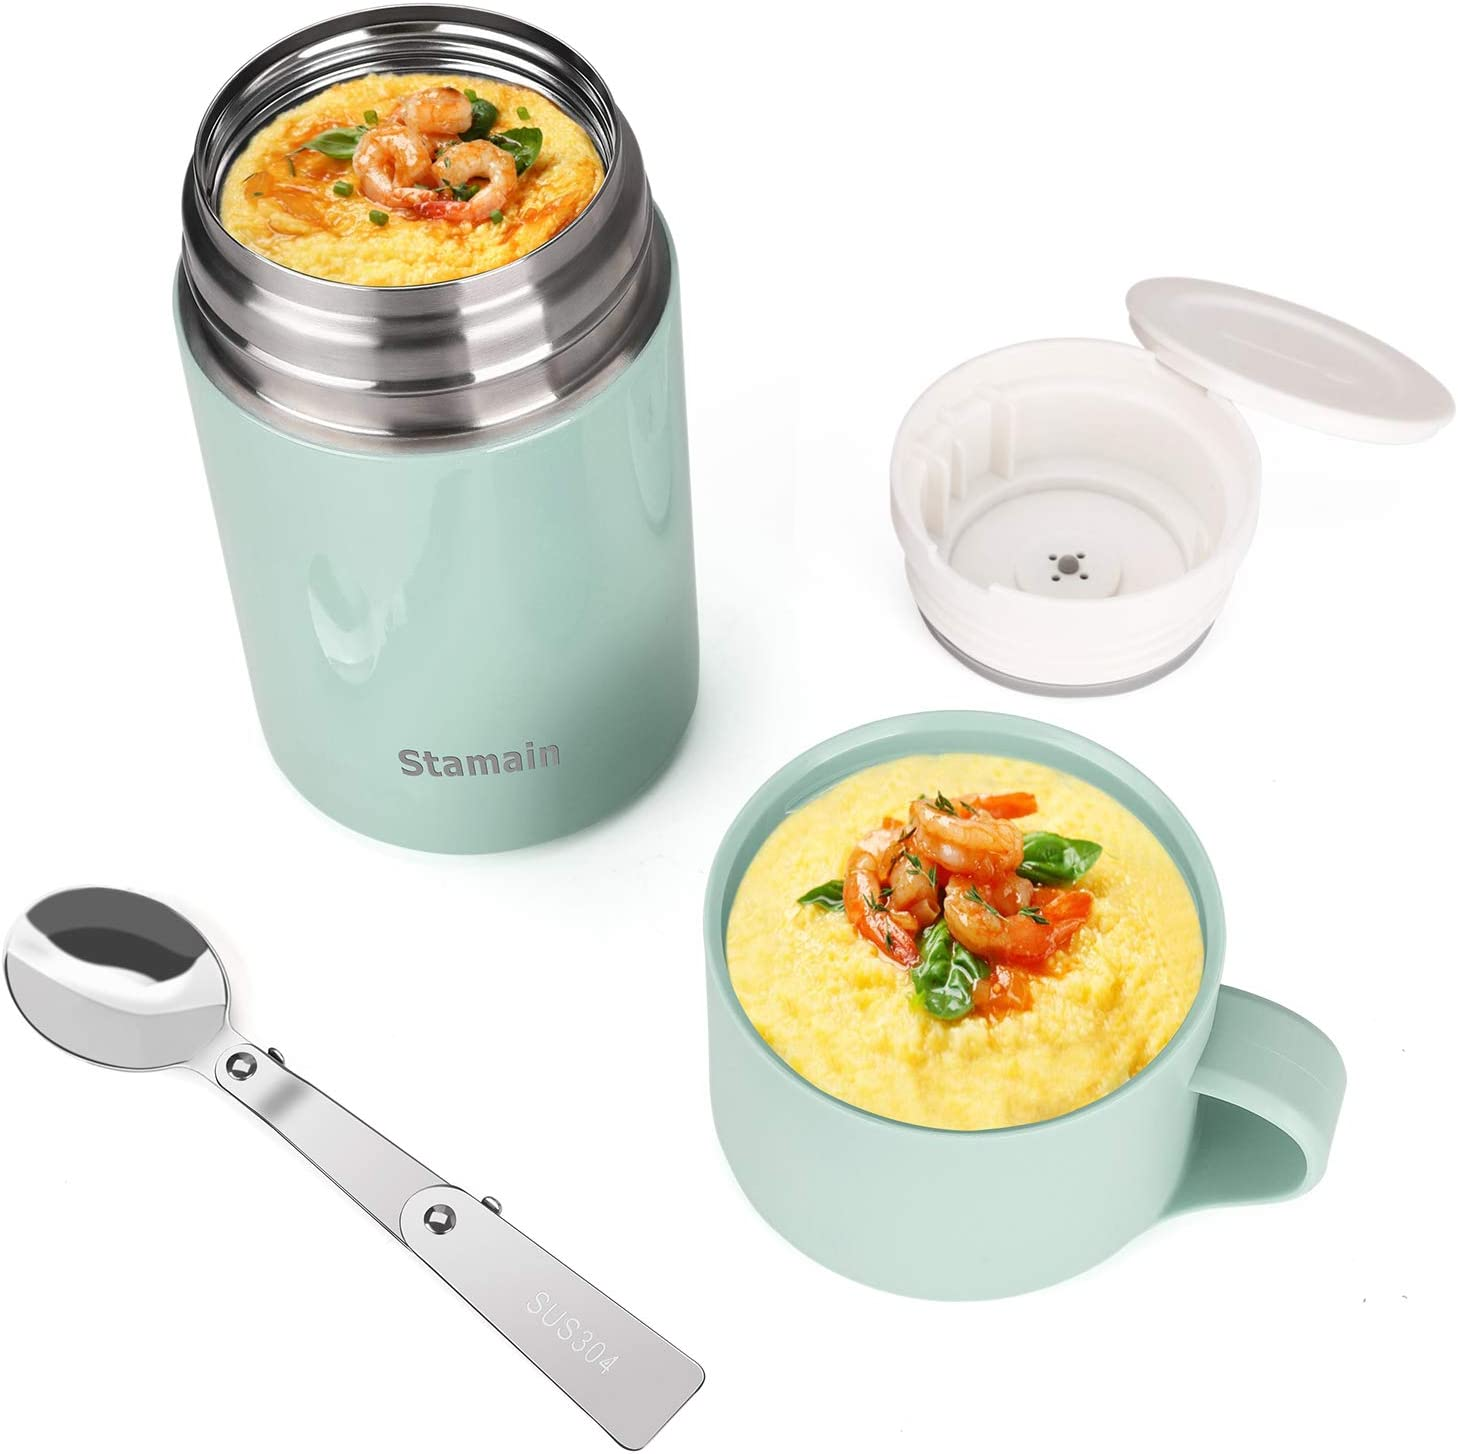 Insulated Lunch Container,Hot Food Jar,20oz Stainless Steel Vacuum Hot & Cold Food Jar with Folding Spoon,Leak Proof Lunch Box Soup with Spoon for School,Office,Picnic,Travel Outdoors,Green